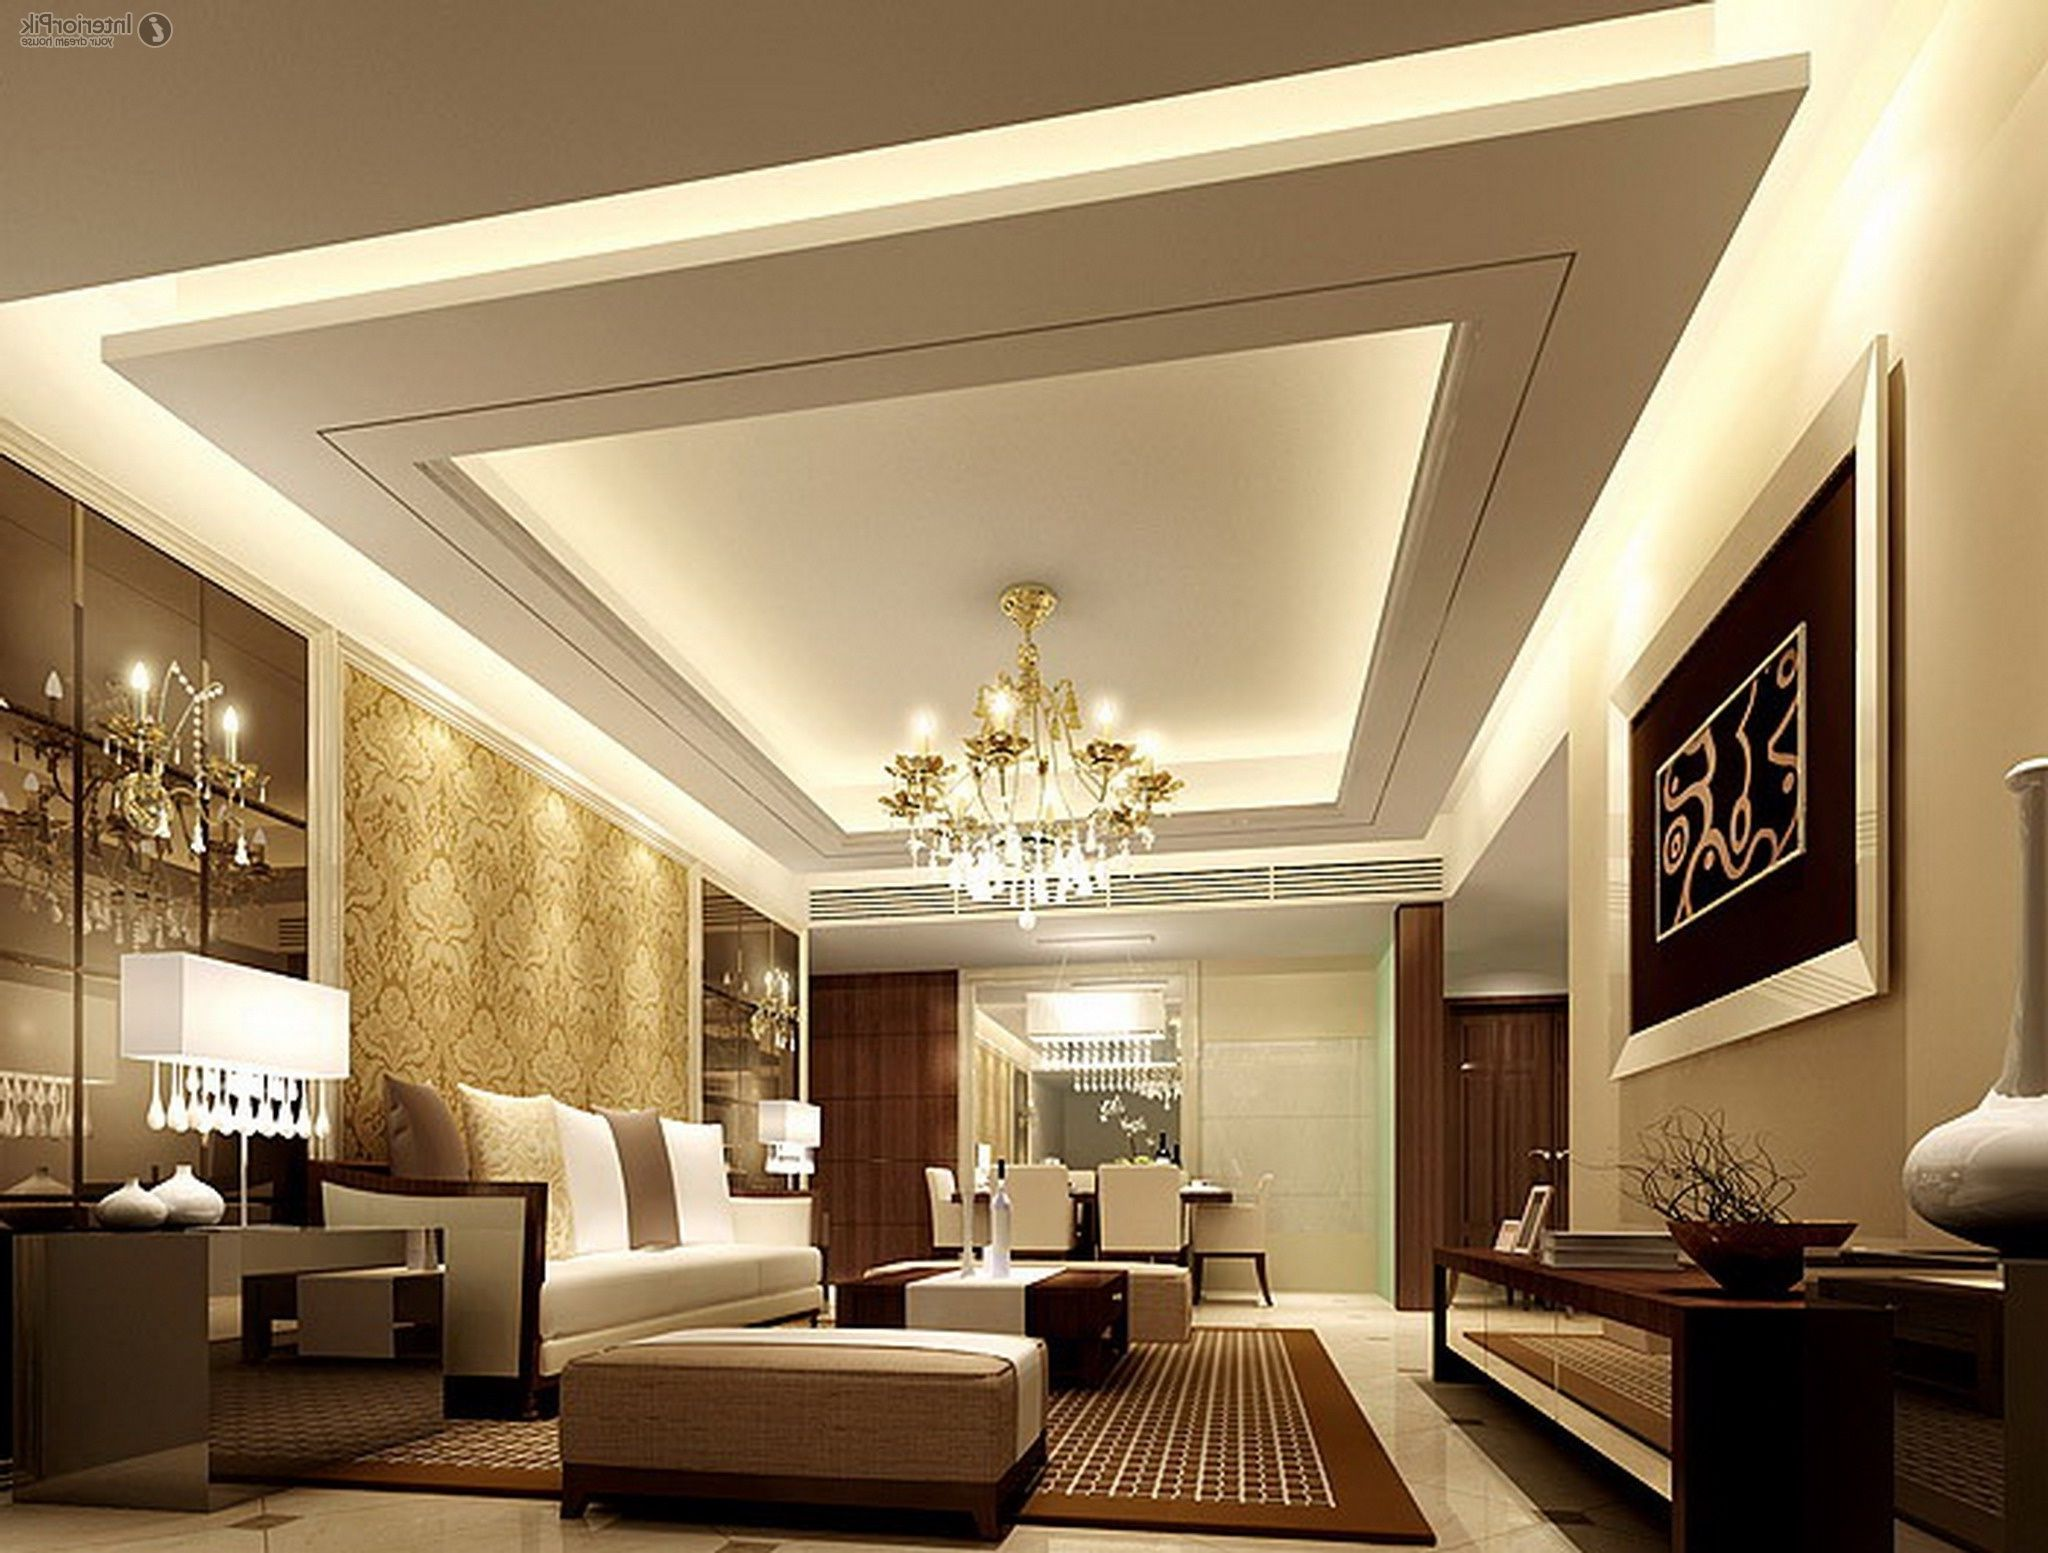 Interesting pop ceiling designs aida homes - Ceiling Designs For Your Living Room